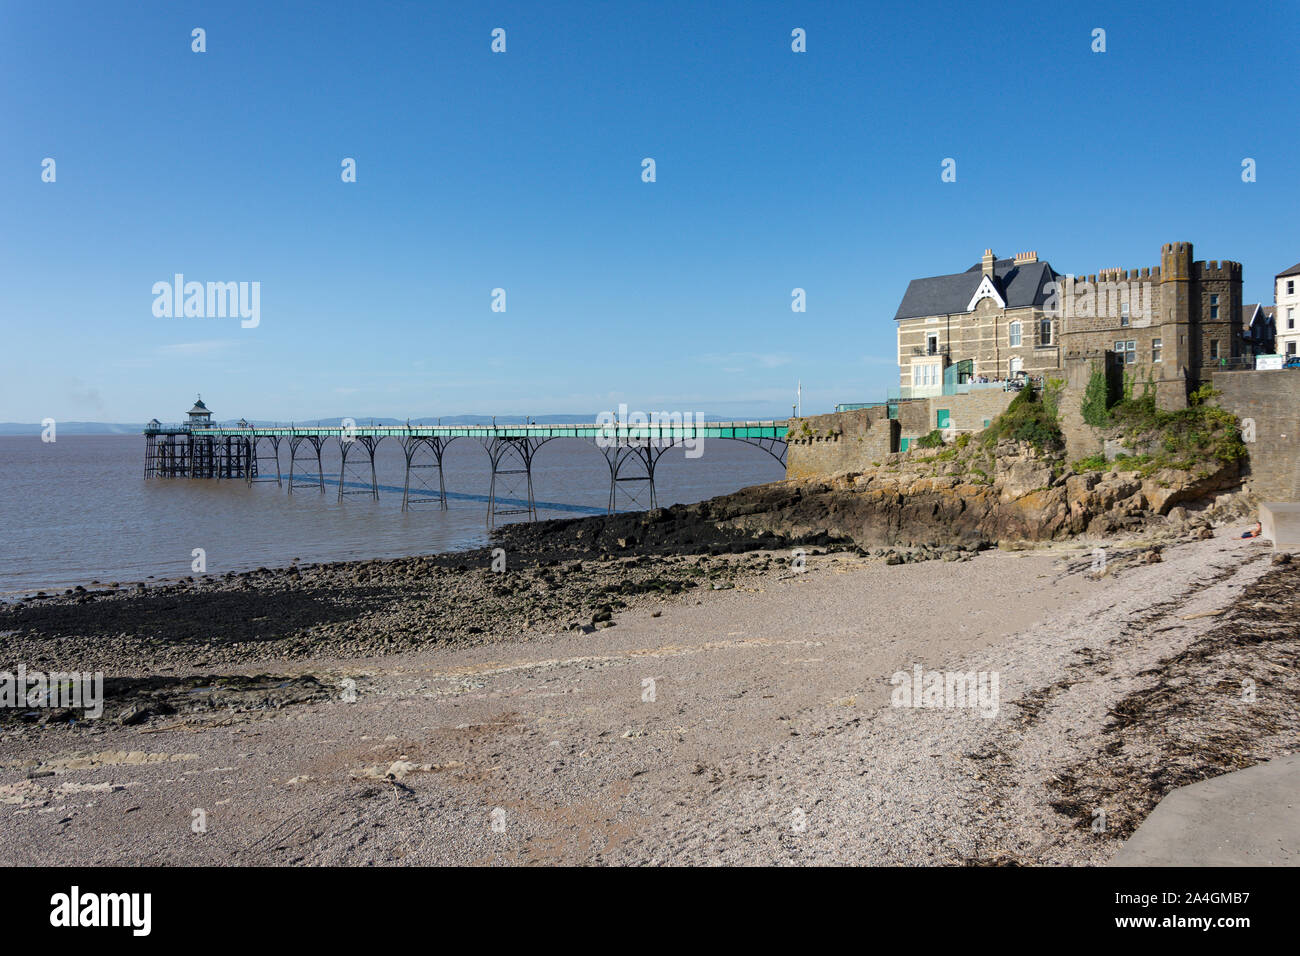 Clevedon Beach and Pier, Clevedon, Somerset, England, United Kingdom Stock Photo